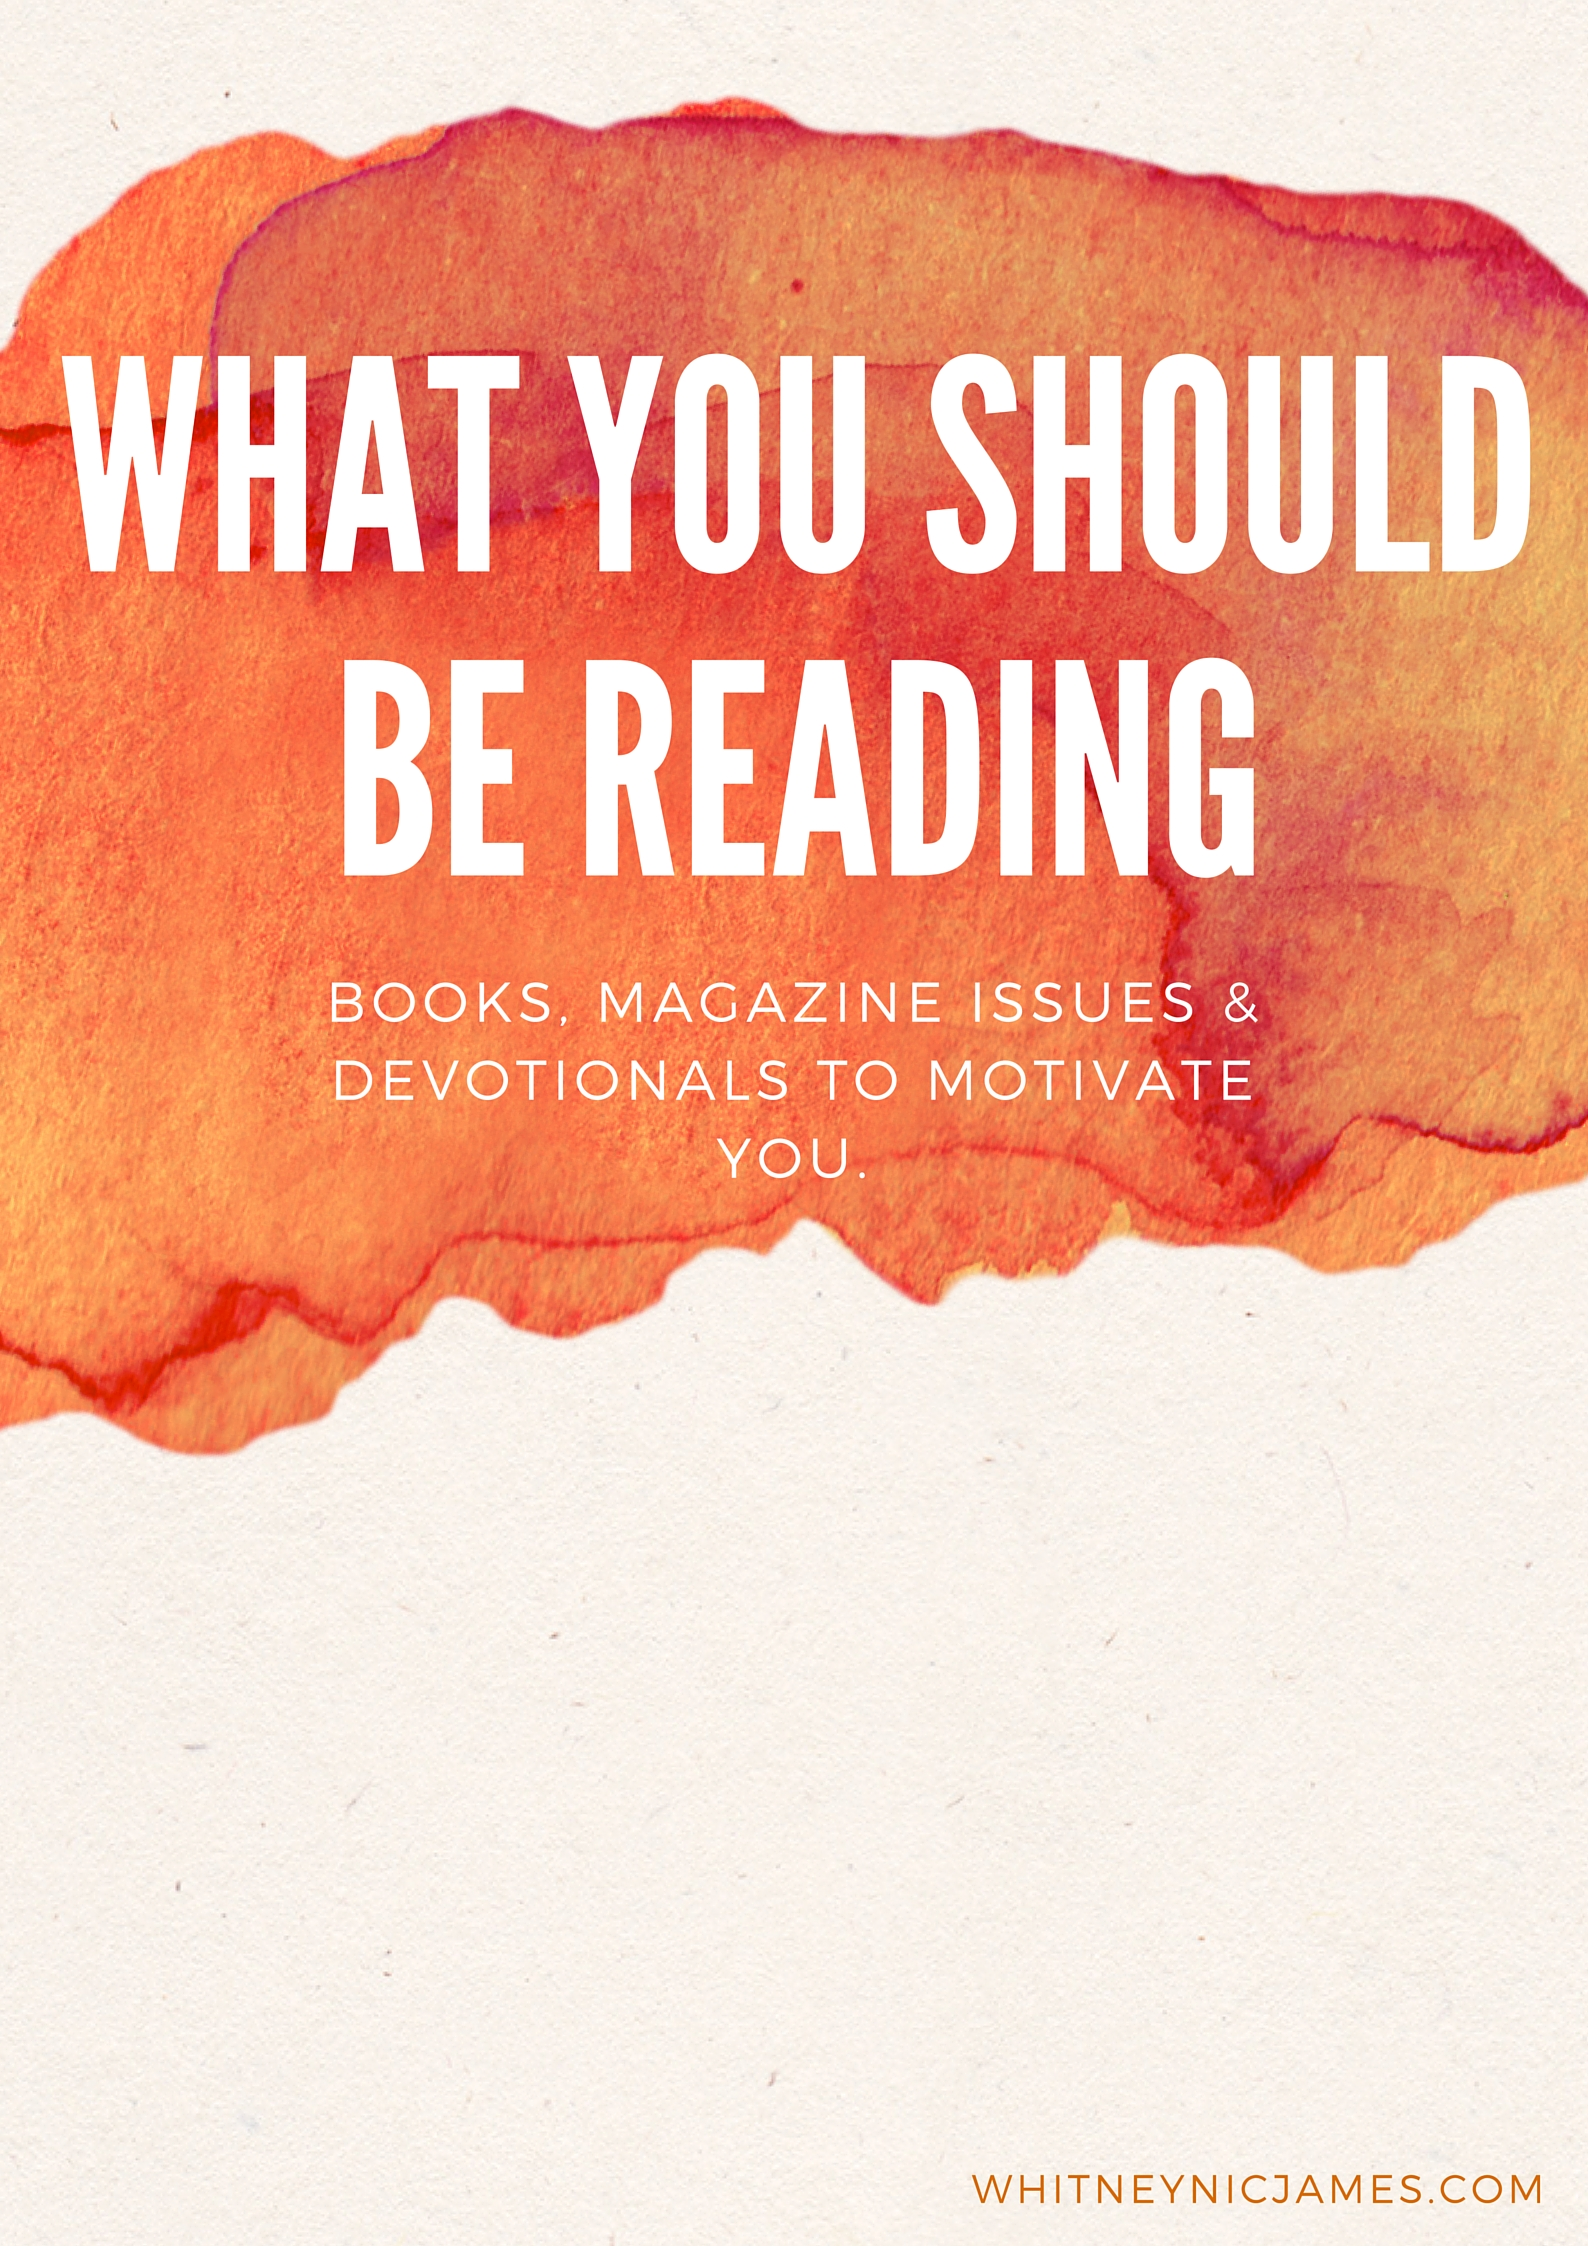 What You Should Be Reading